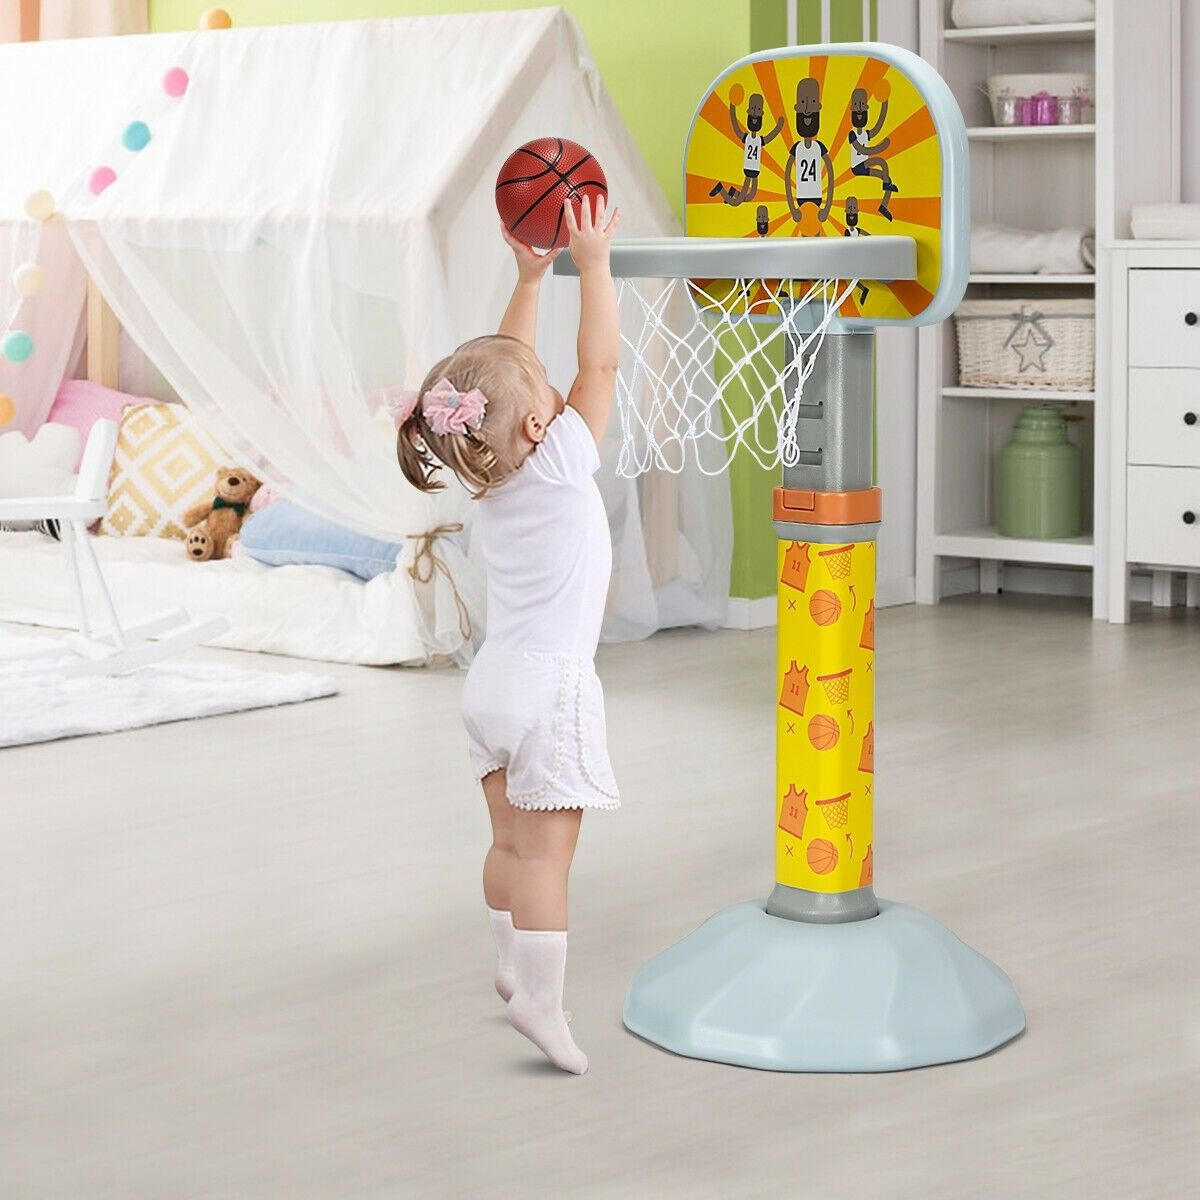 Kids Basketball Hoop Stand With Adjustable Height Kids Basketball Basketball Hoop Basketball